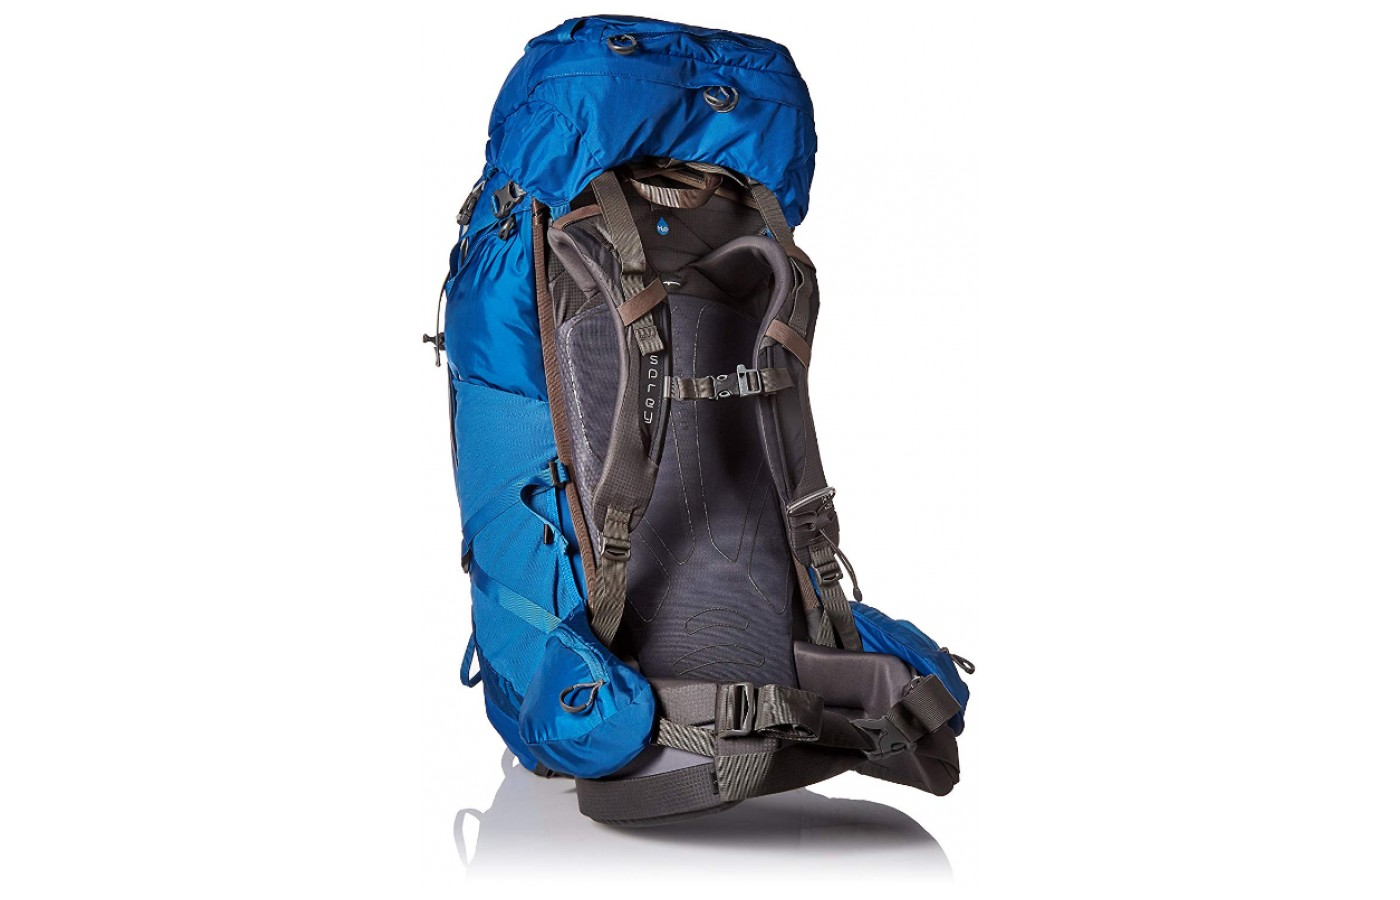 The overall design helps you organize your needs for the best hiking experience.